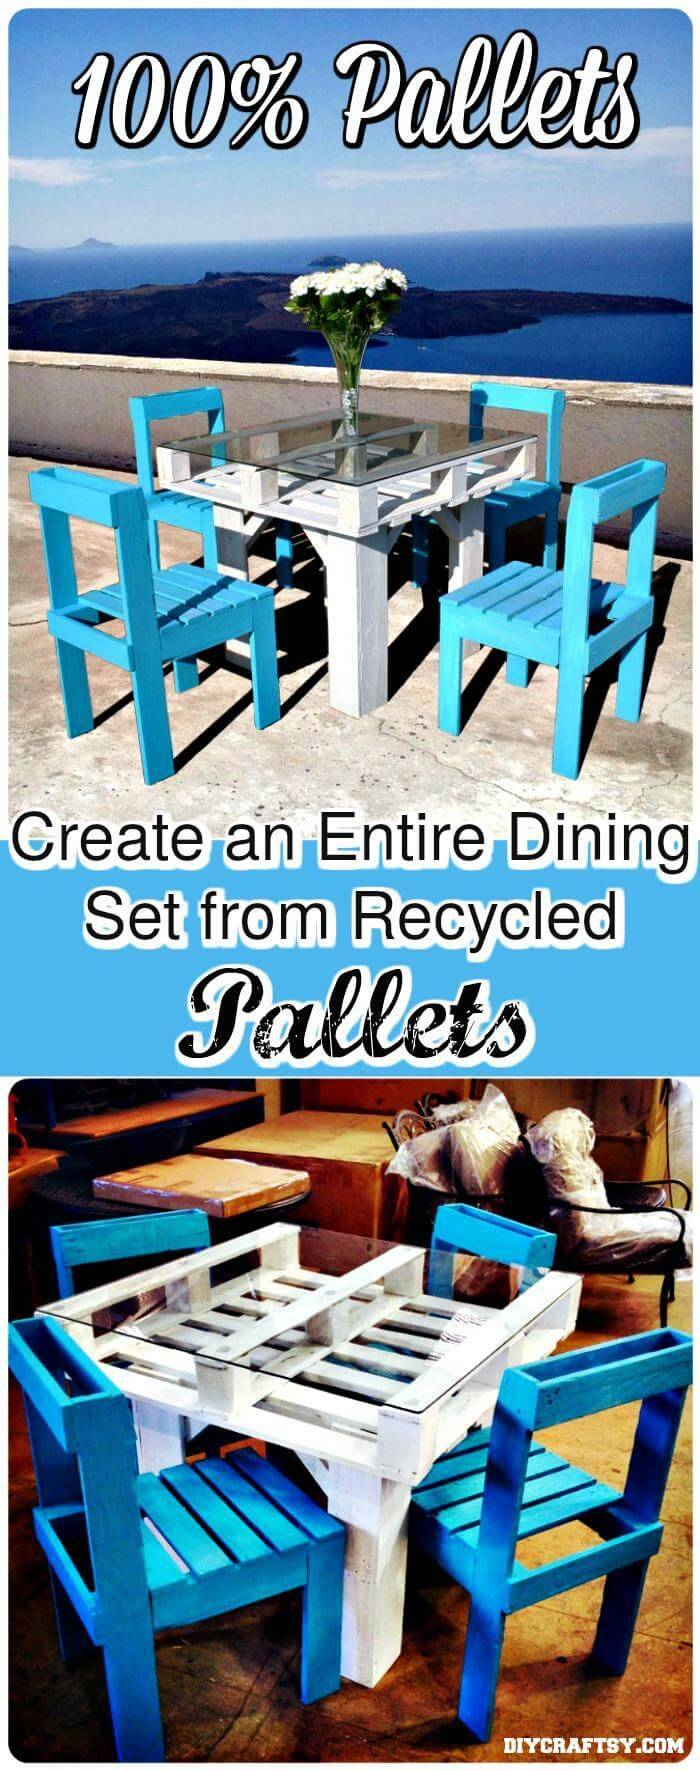 Self-Made Pallet Dining Table Set